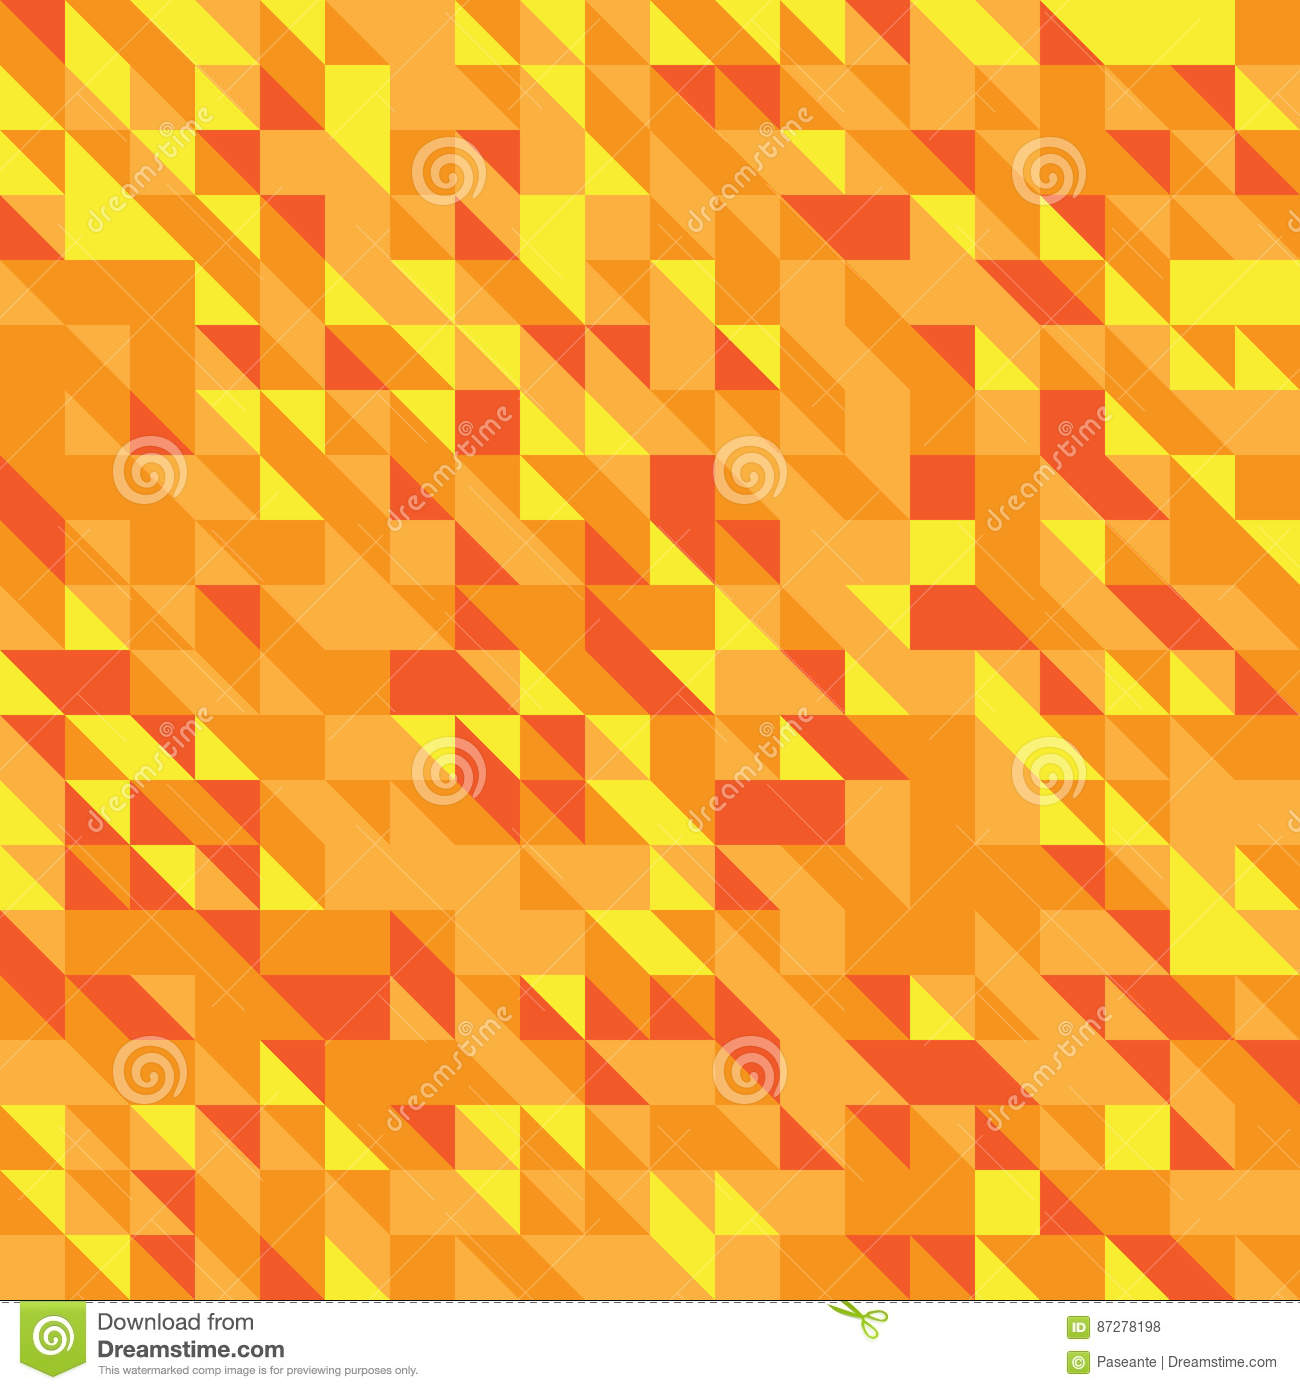 Different Shades Of Yellow vector illustration of a seamless pattern of simple triangles in